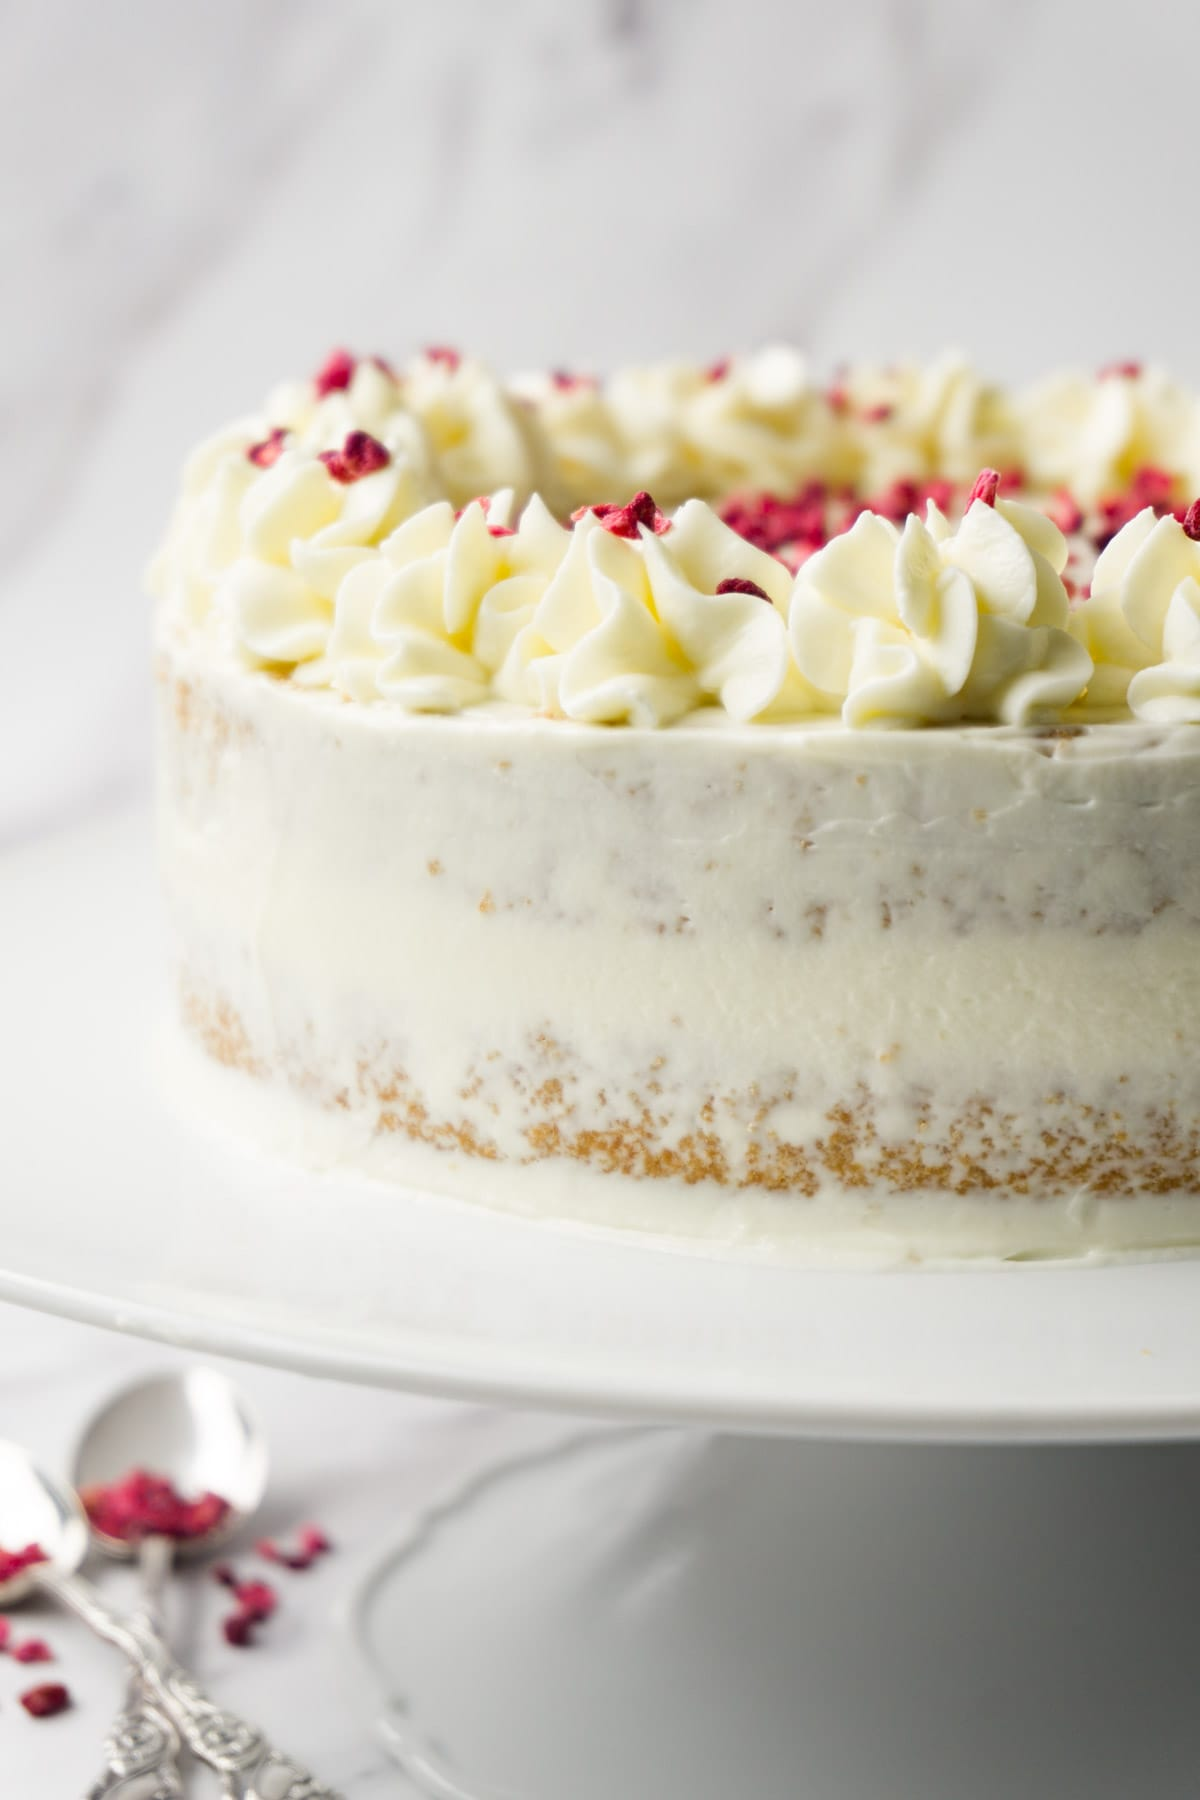 Halve naked low carb vanilla caramel cake with cream cheese frosting and decorated with freeze-dried raspberries on a white cake platter.